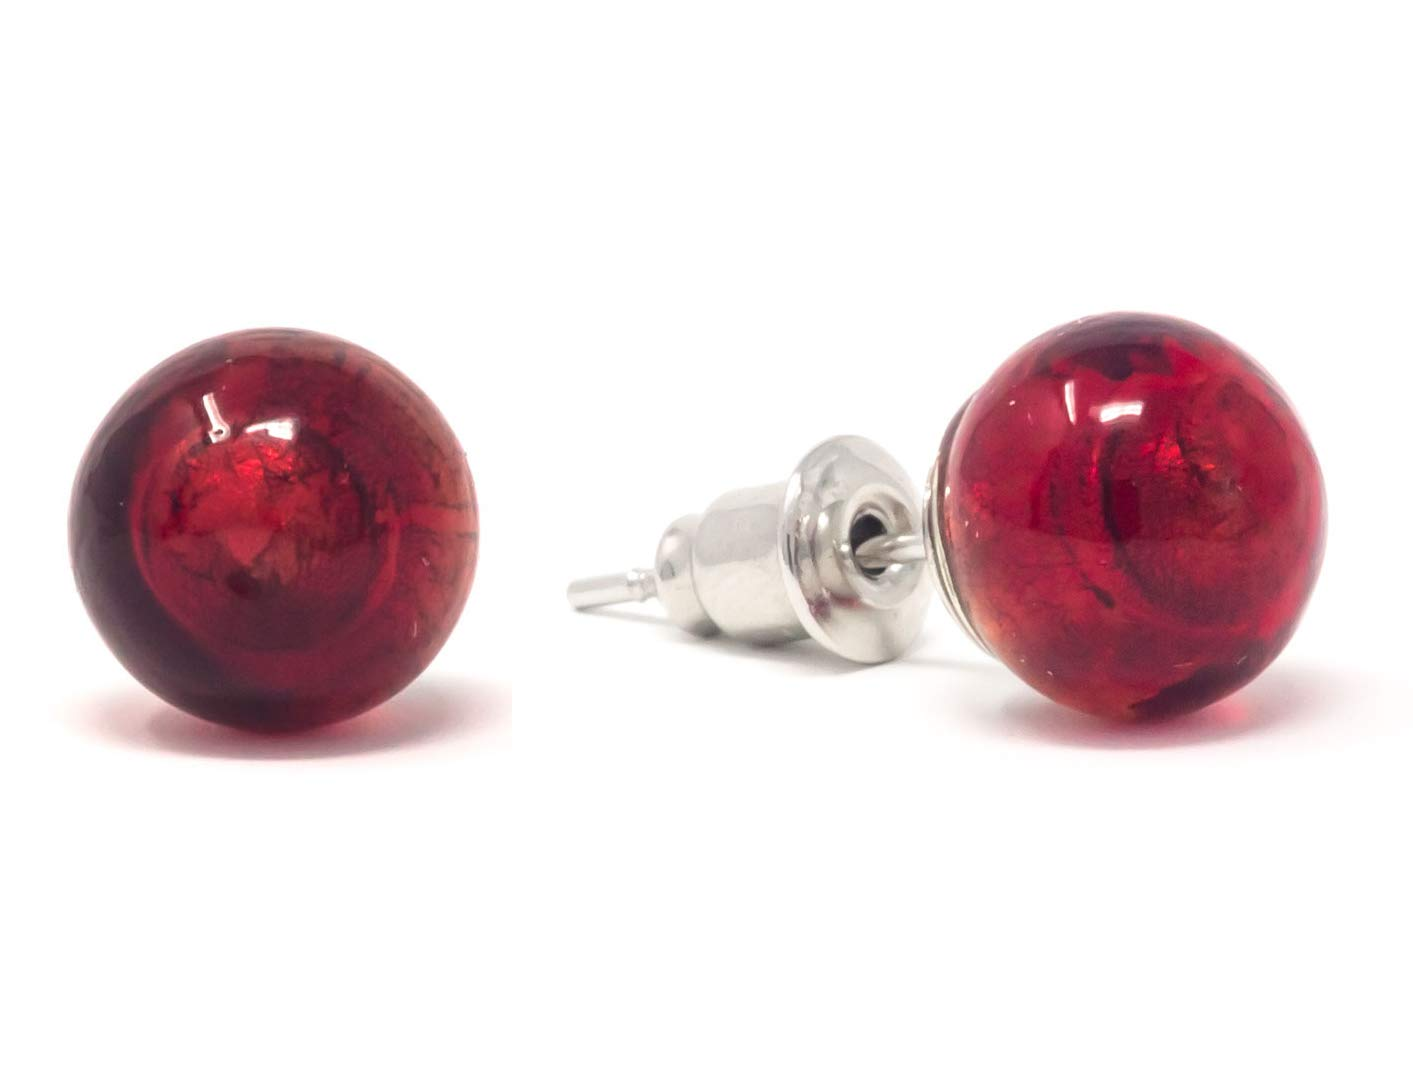 Hand Blown Glass Authentic Murano Glass Stud Earrings Murano Glass Hand Made In Italy beaded earrings